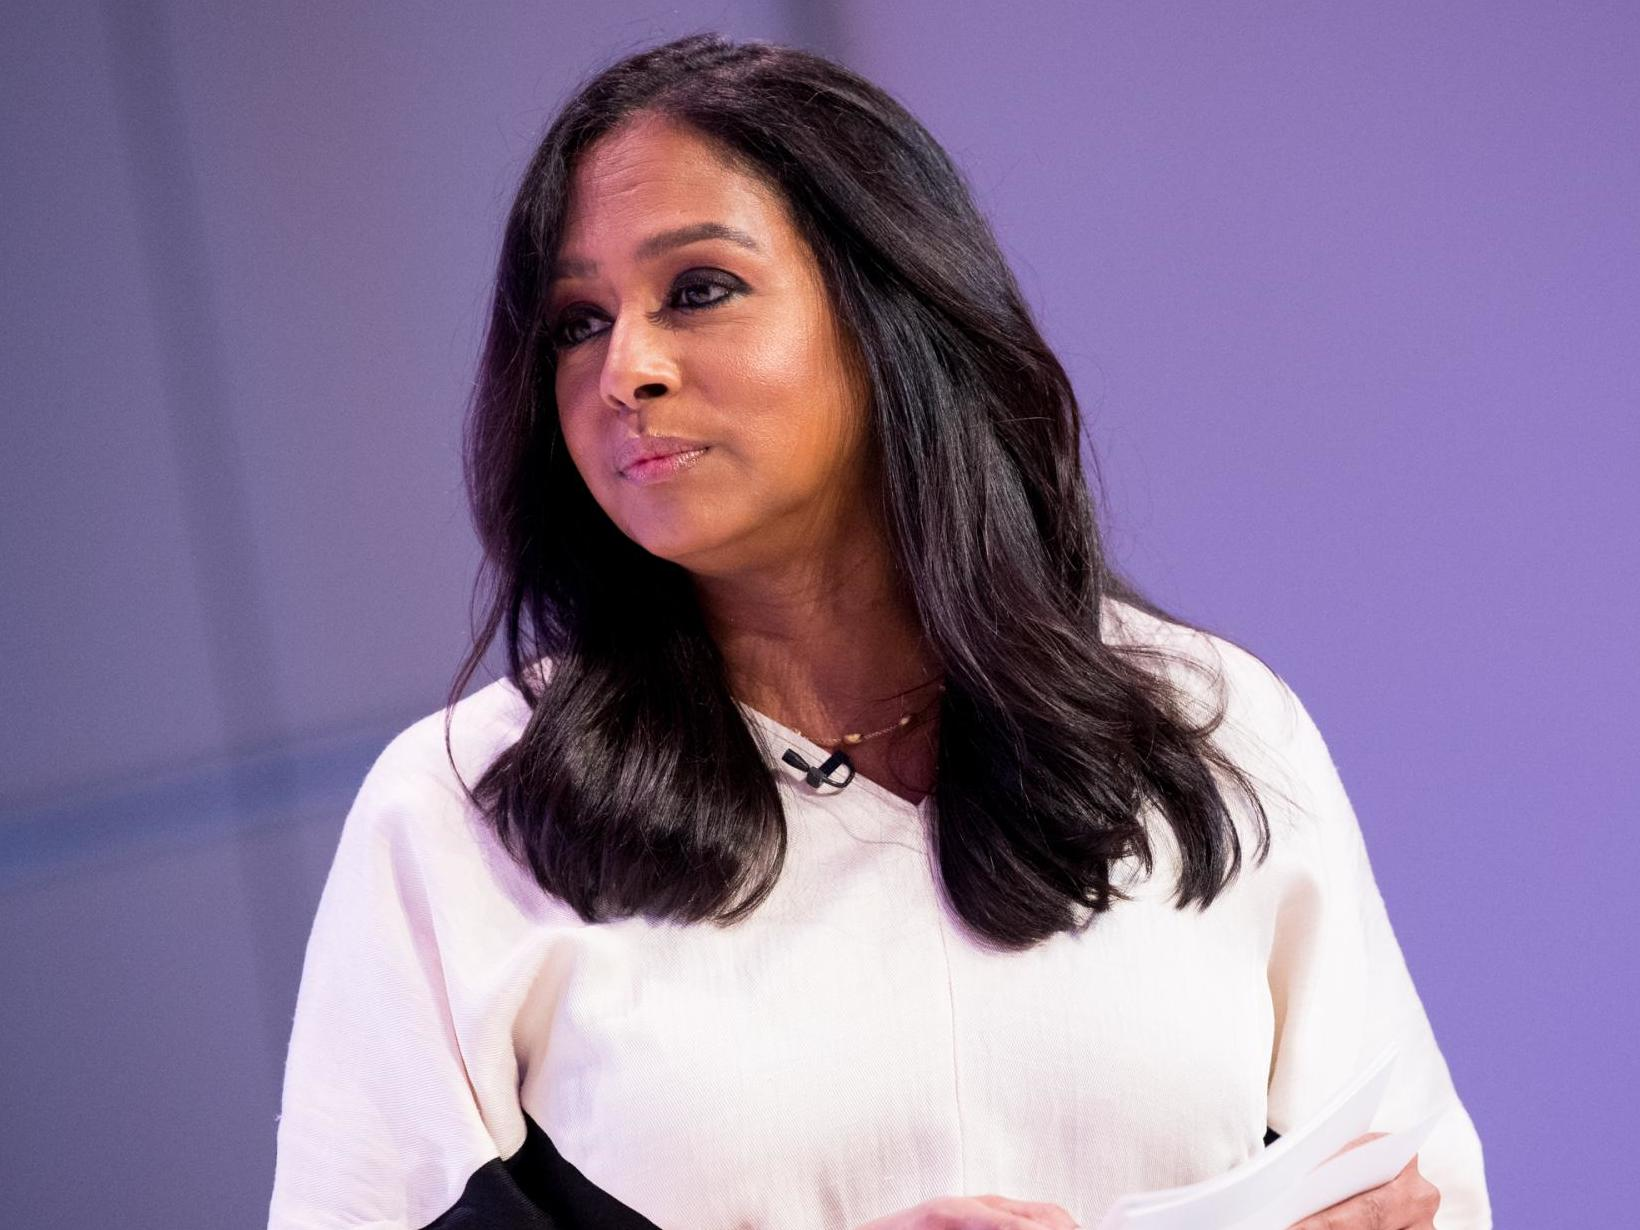 Maya Harris Who Is Kamala S Younger Sister And Why Do People Call Her The Next Bobby Kennedy The Independent The Independent